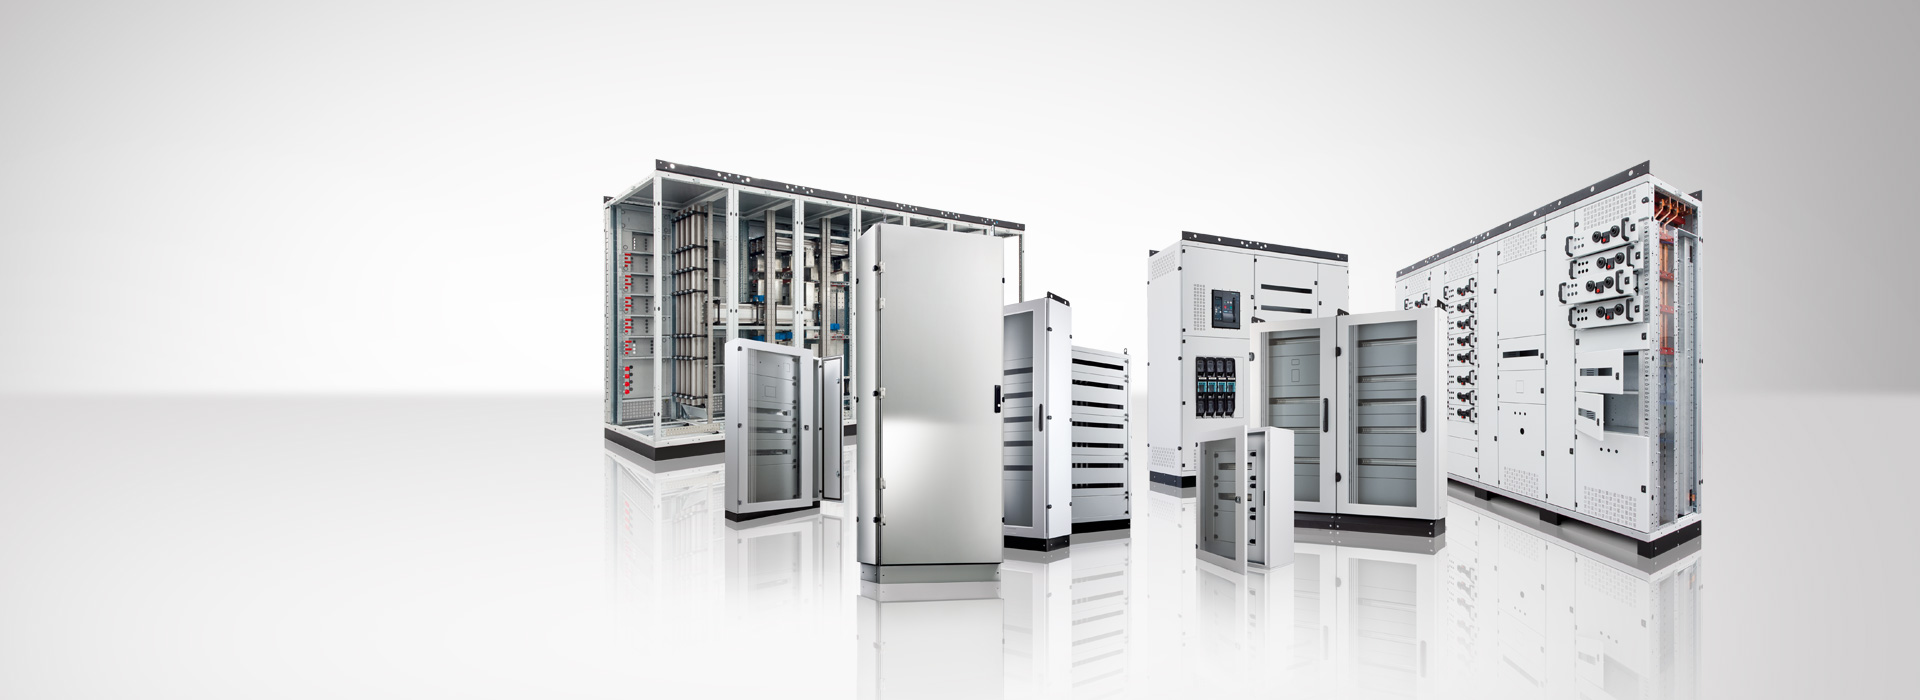 Enclosures for electrical cabinets